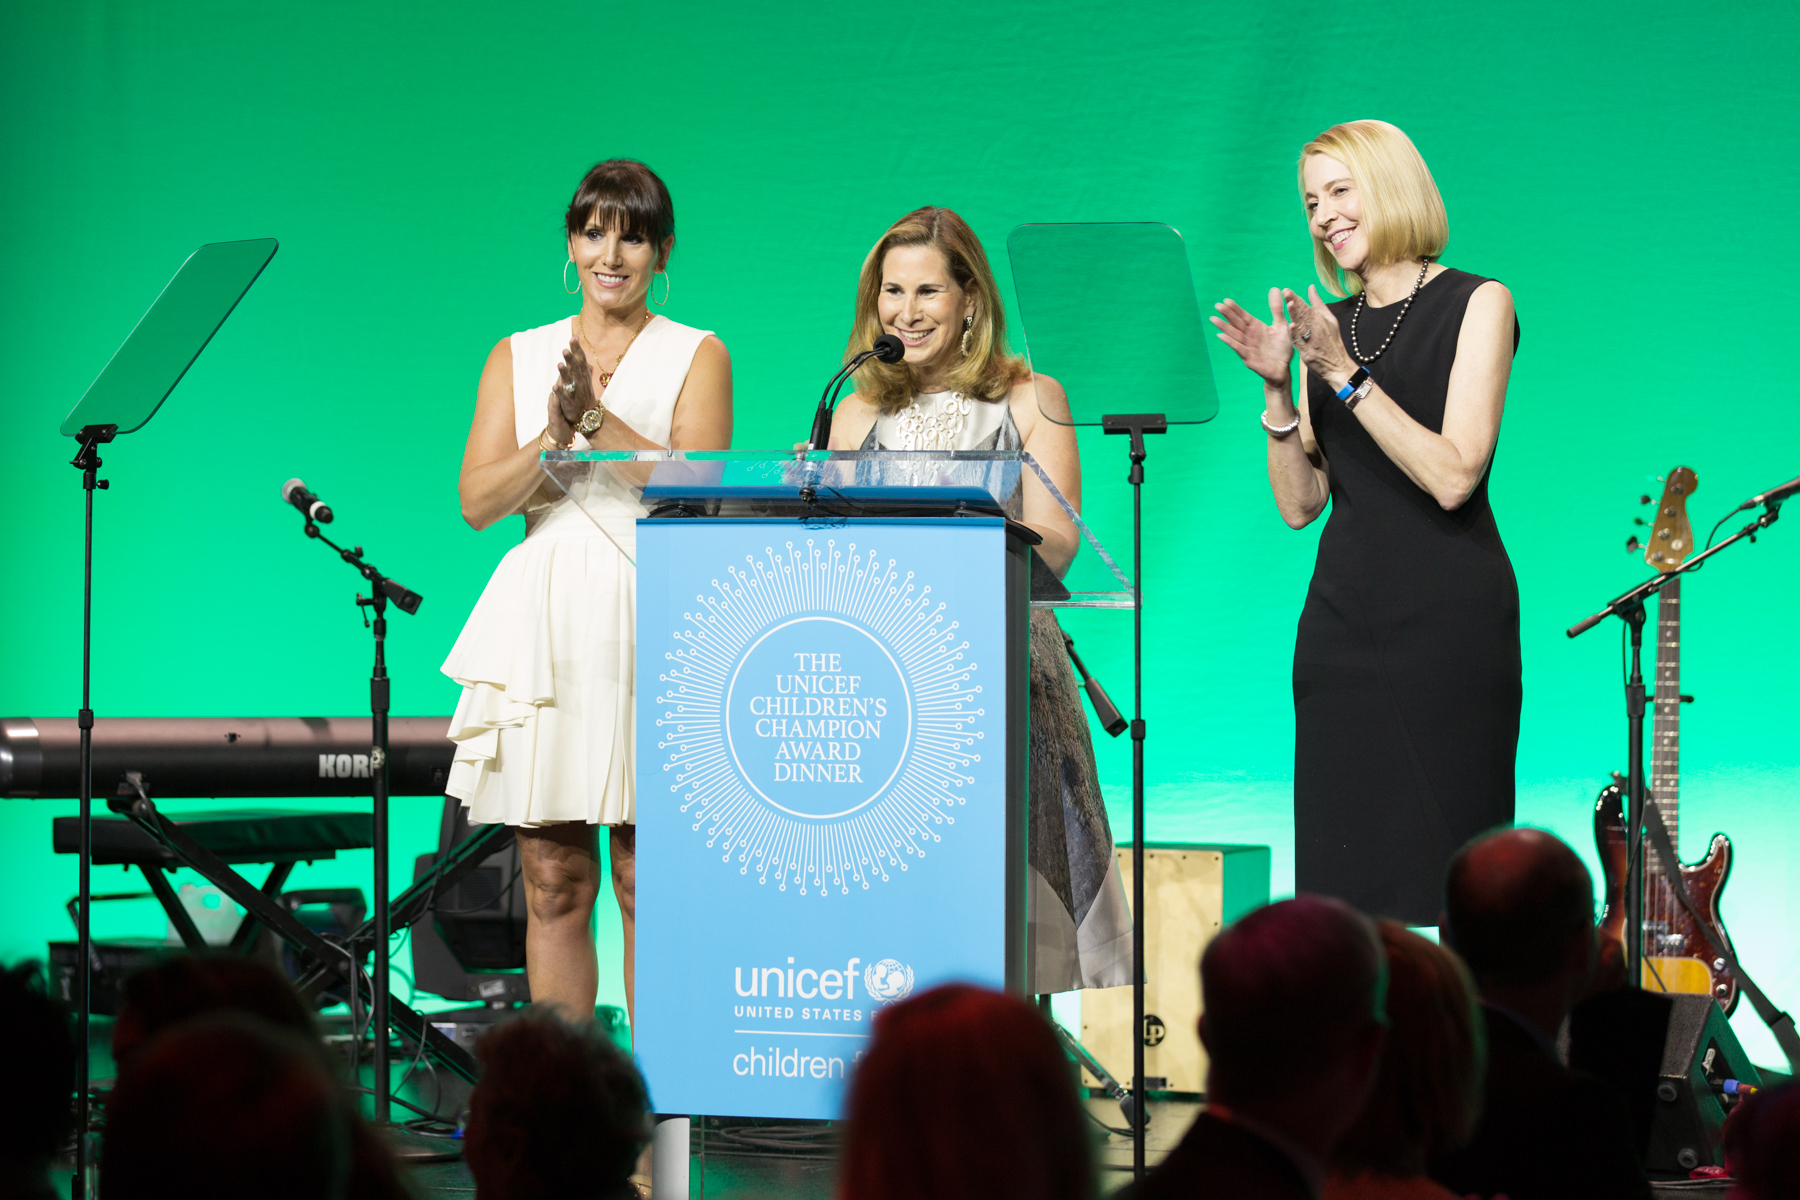 2016 UNICEF Children's Champion Award Dinner Chairs Tiffany Ortiz, Patty Ribakoff and Susan Littlefield.  ©Michael Blanchard Photography